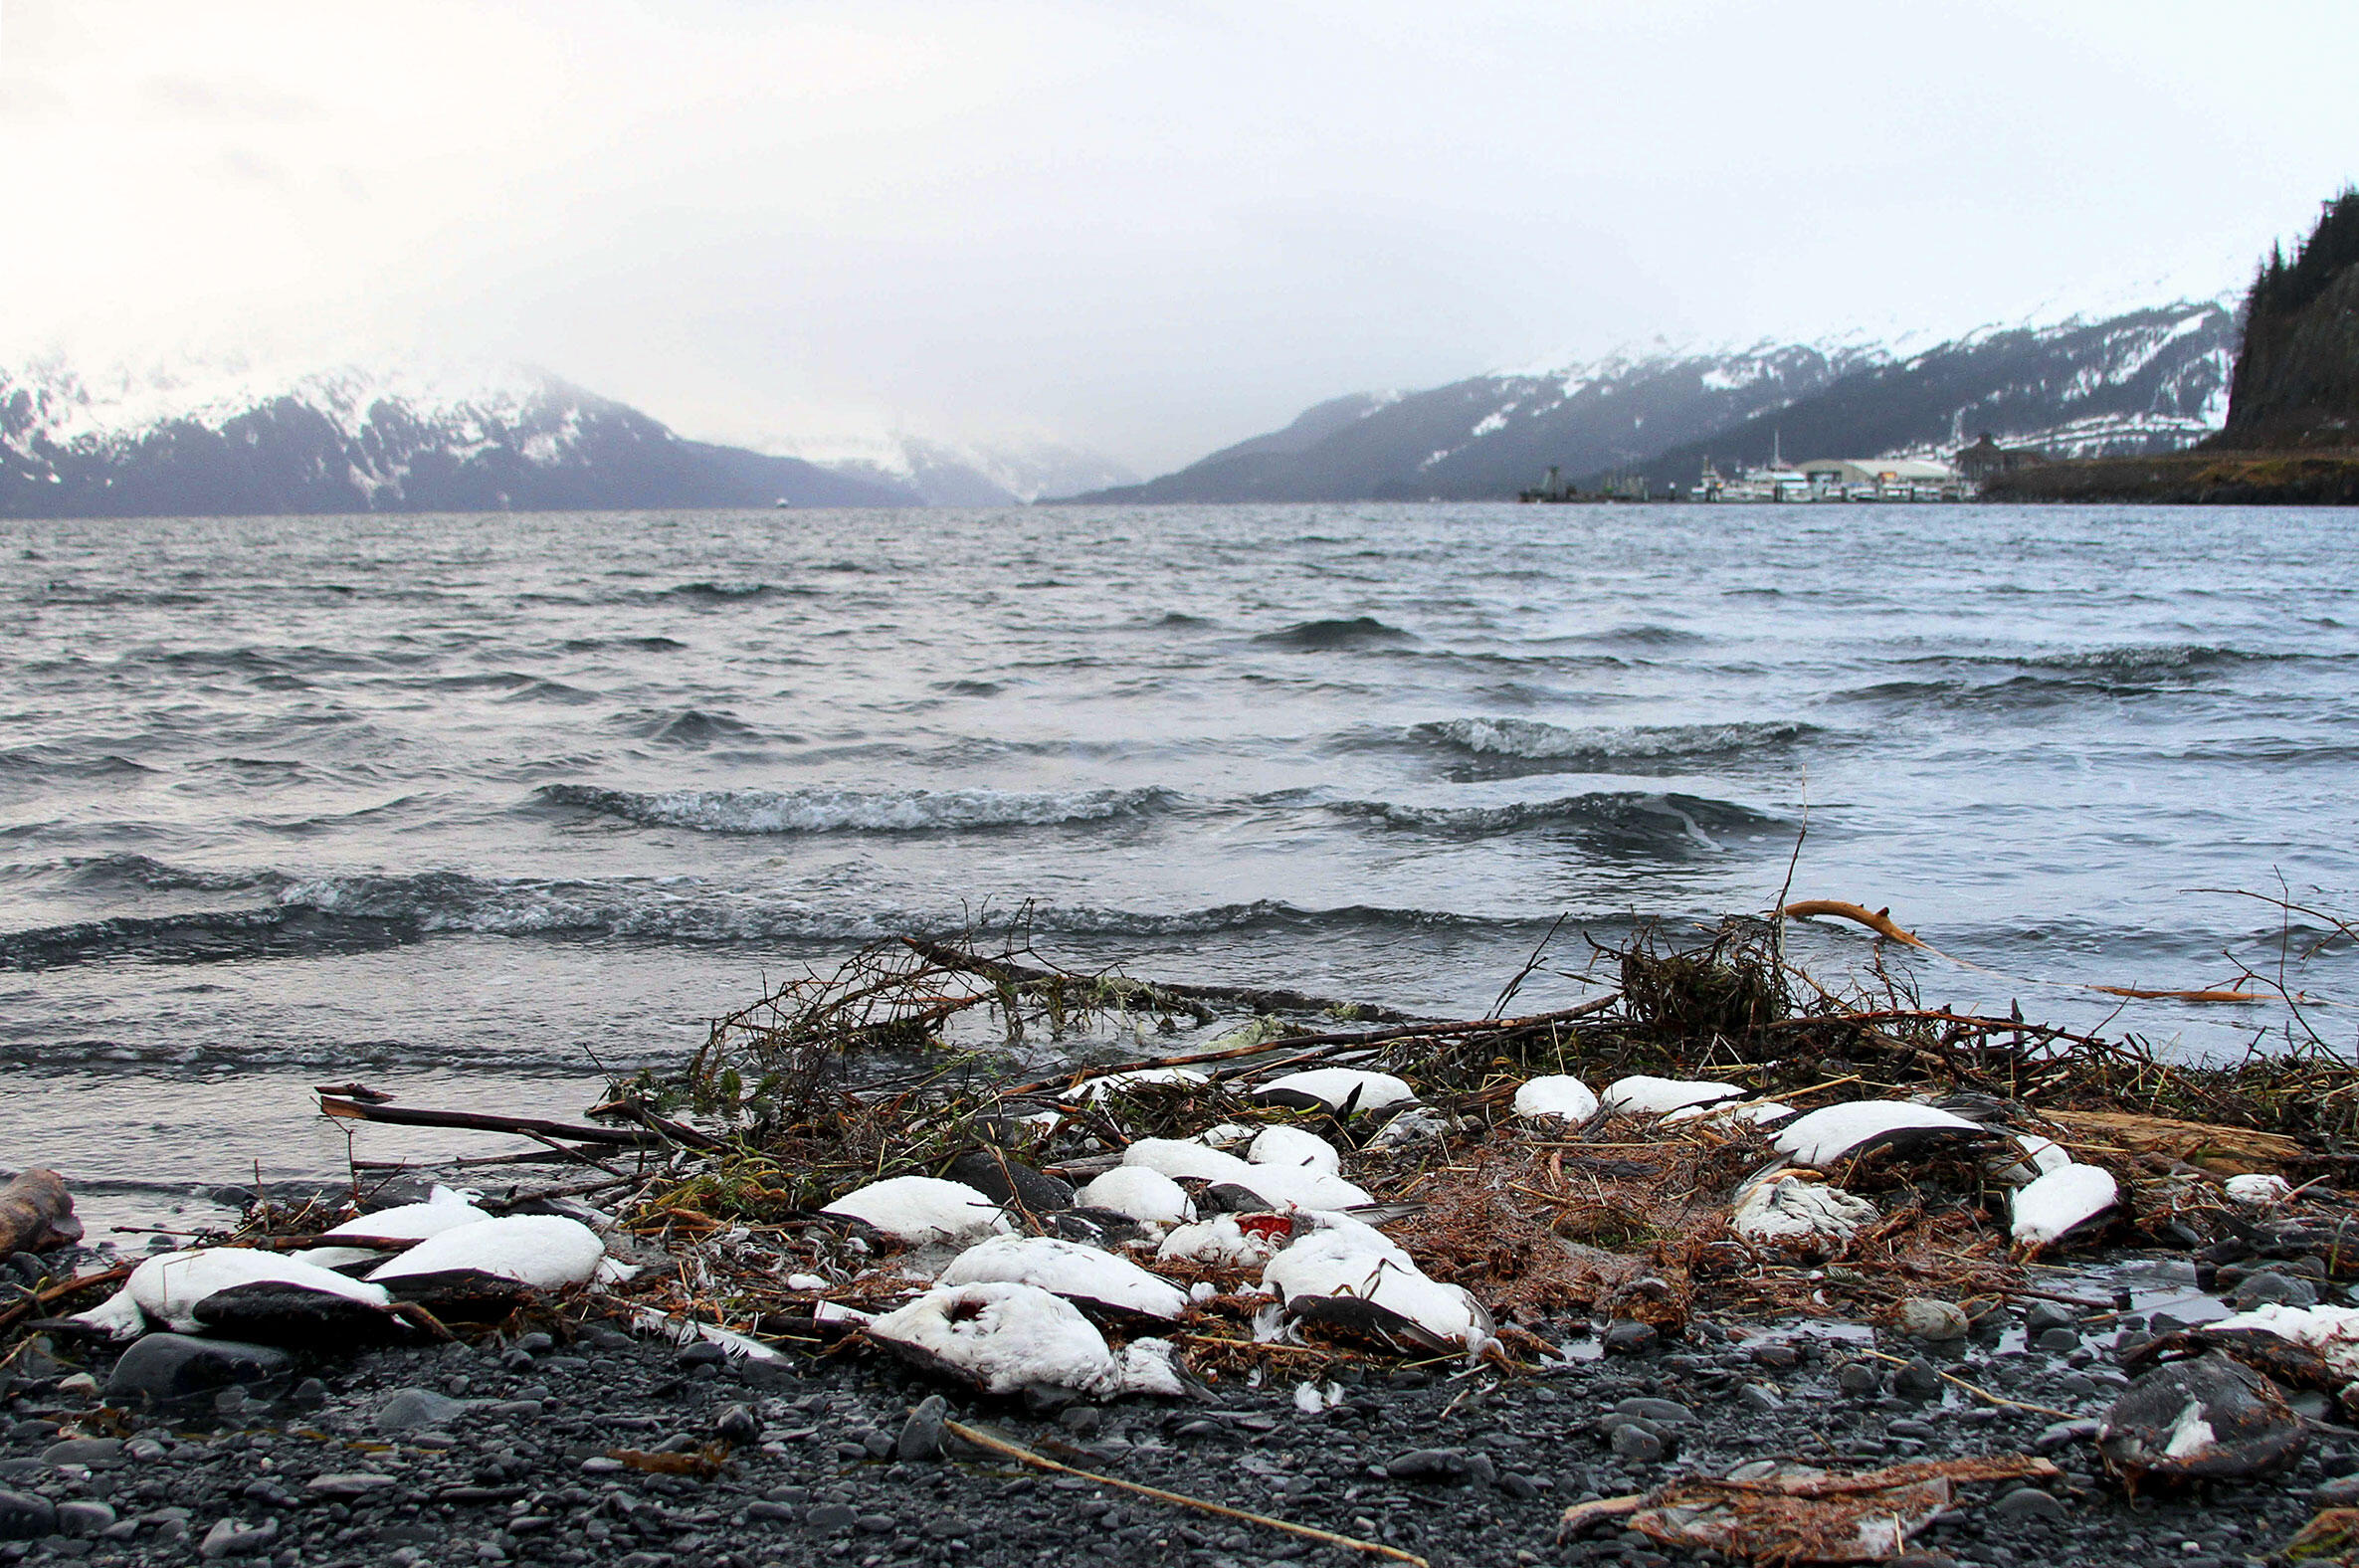 In 2016, tens of thousands of Common Murres washed up dead on beaches lining the Gulf of Alaska. Several more mass seabird die-offs have occurred in the region since then. Mark Thiessen/AP